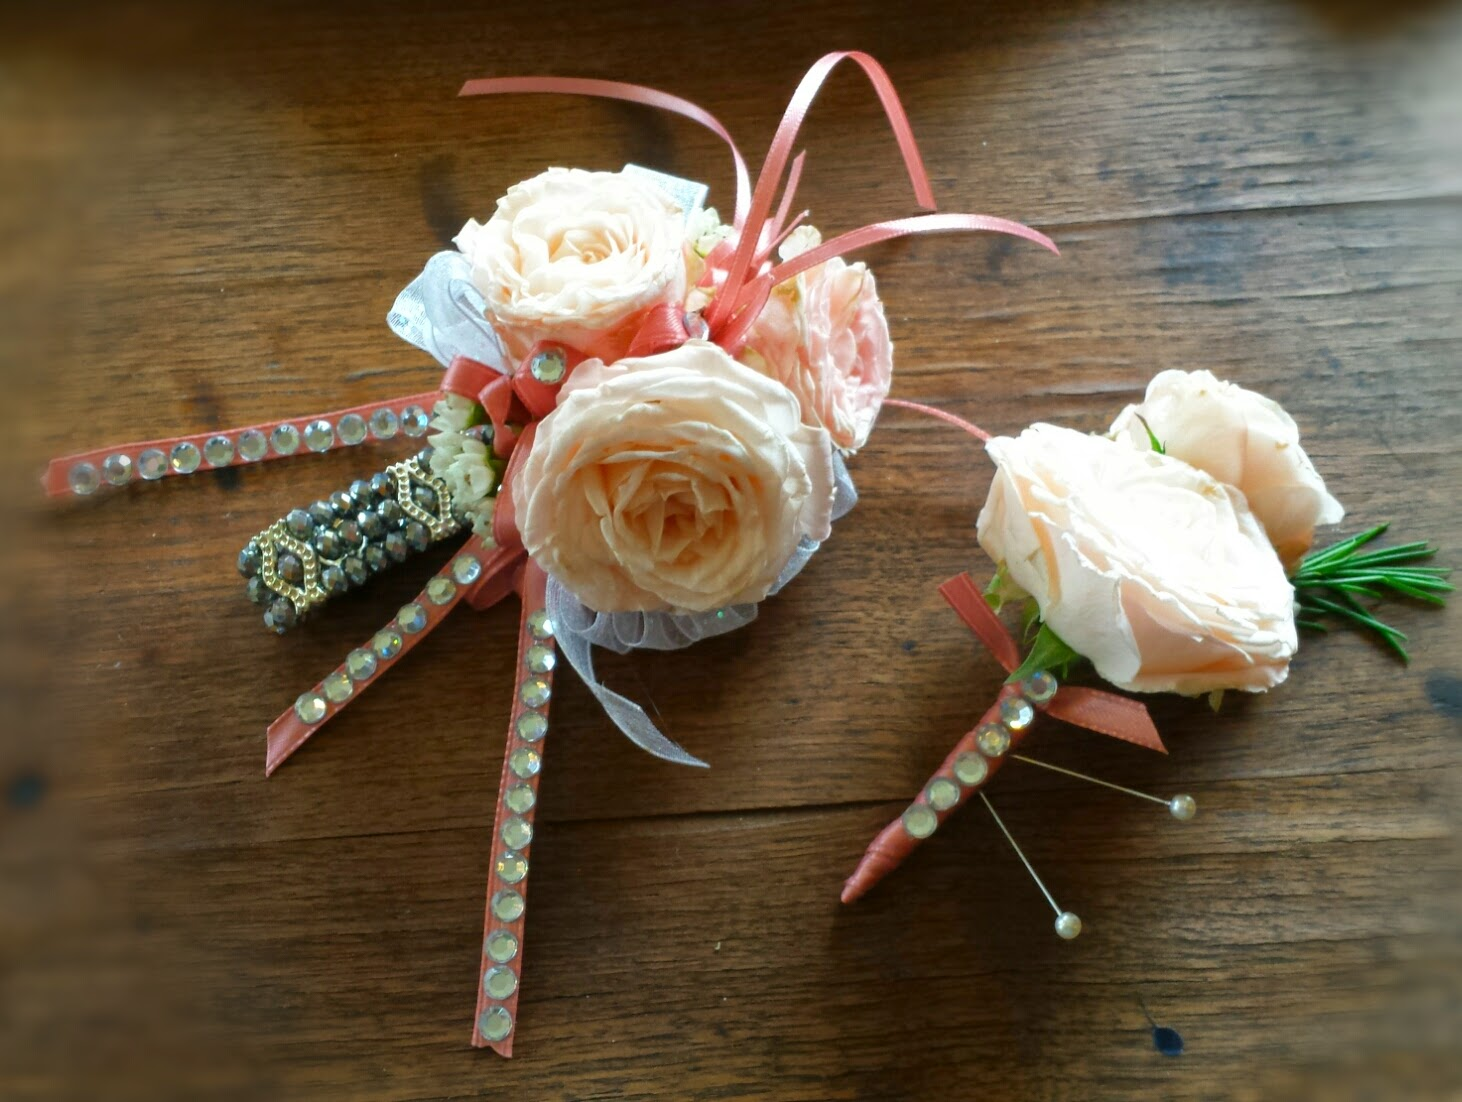 Prom '15 wrap up - Roses. Garden miniature rose corsage and boutonniere